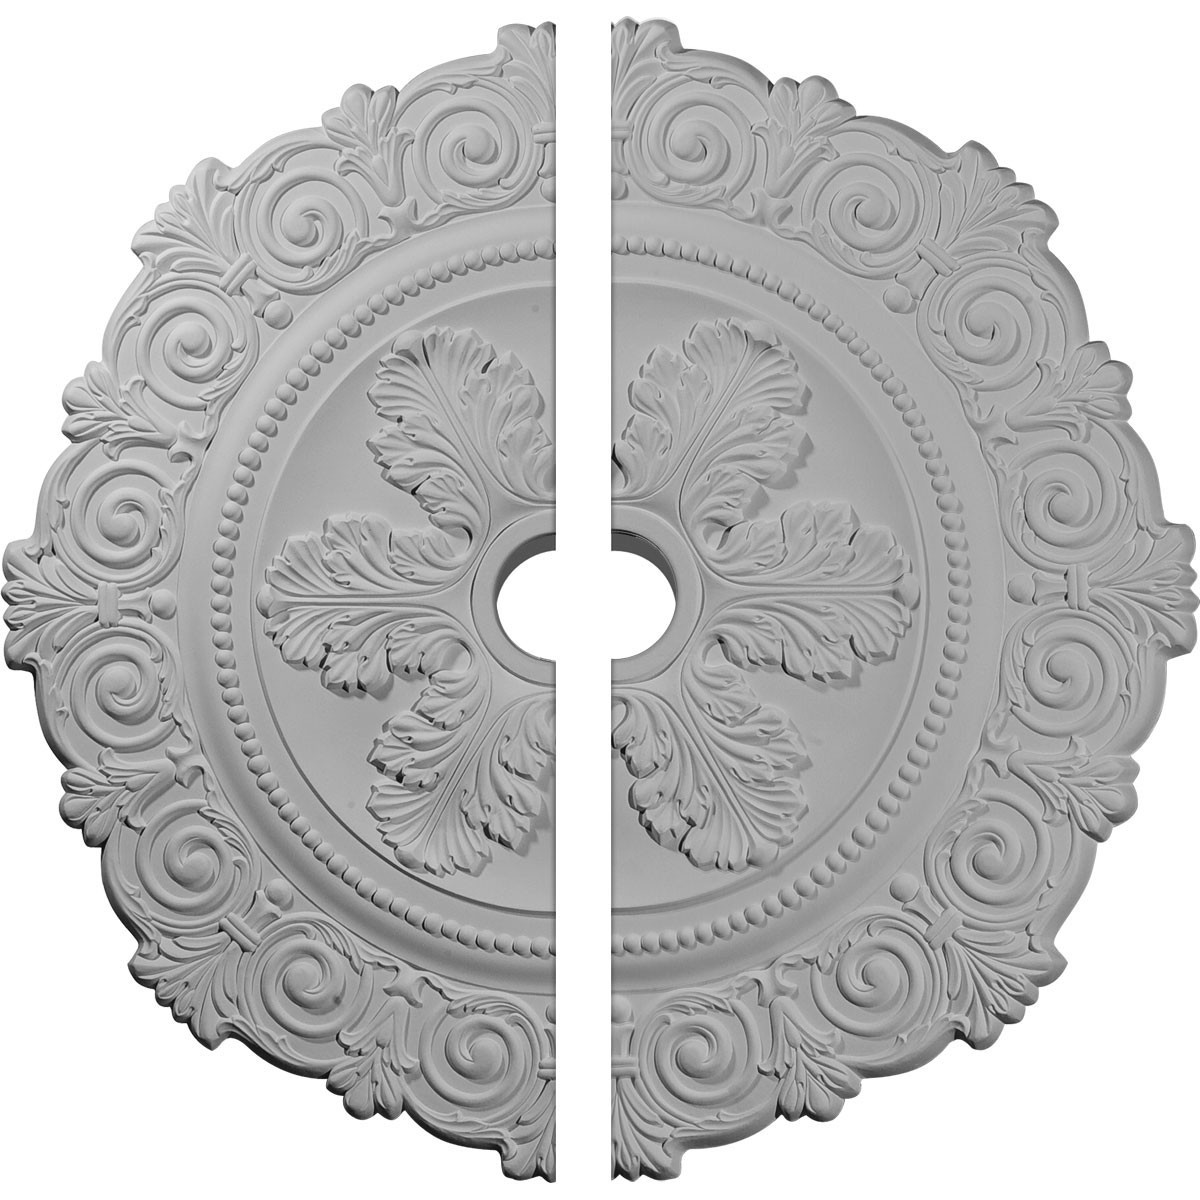 """EM-CM33SC2 - 33 1/4""""OD x 3 5/8""""ID x 1""""P Scroll Medallion, Two Piece (Fits Canopies up to 3 5/8"""")"""